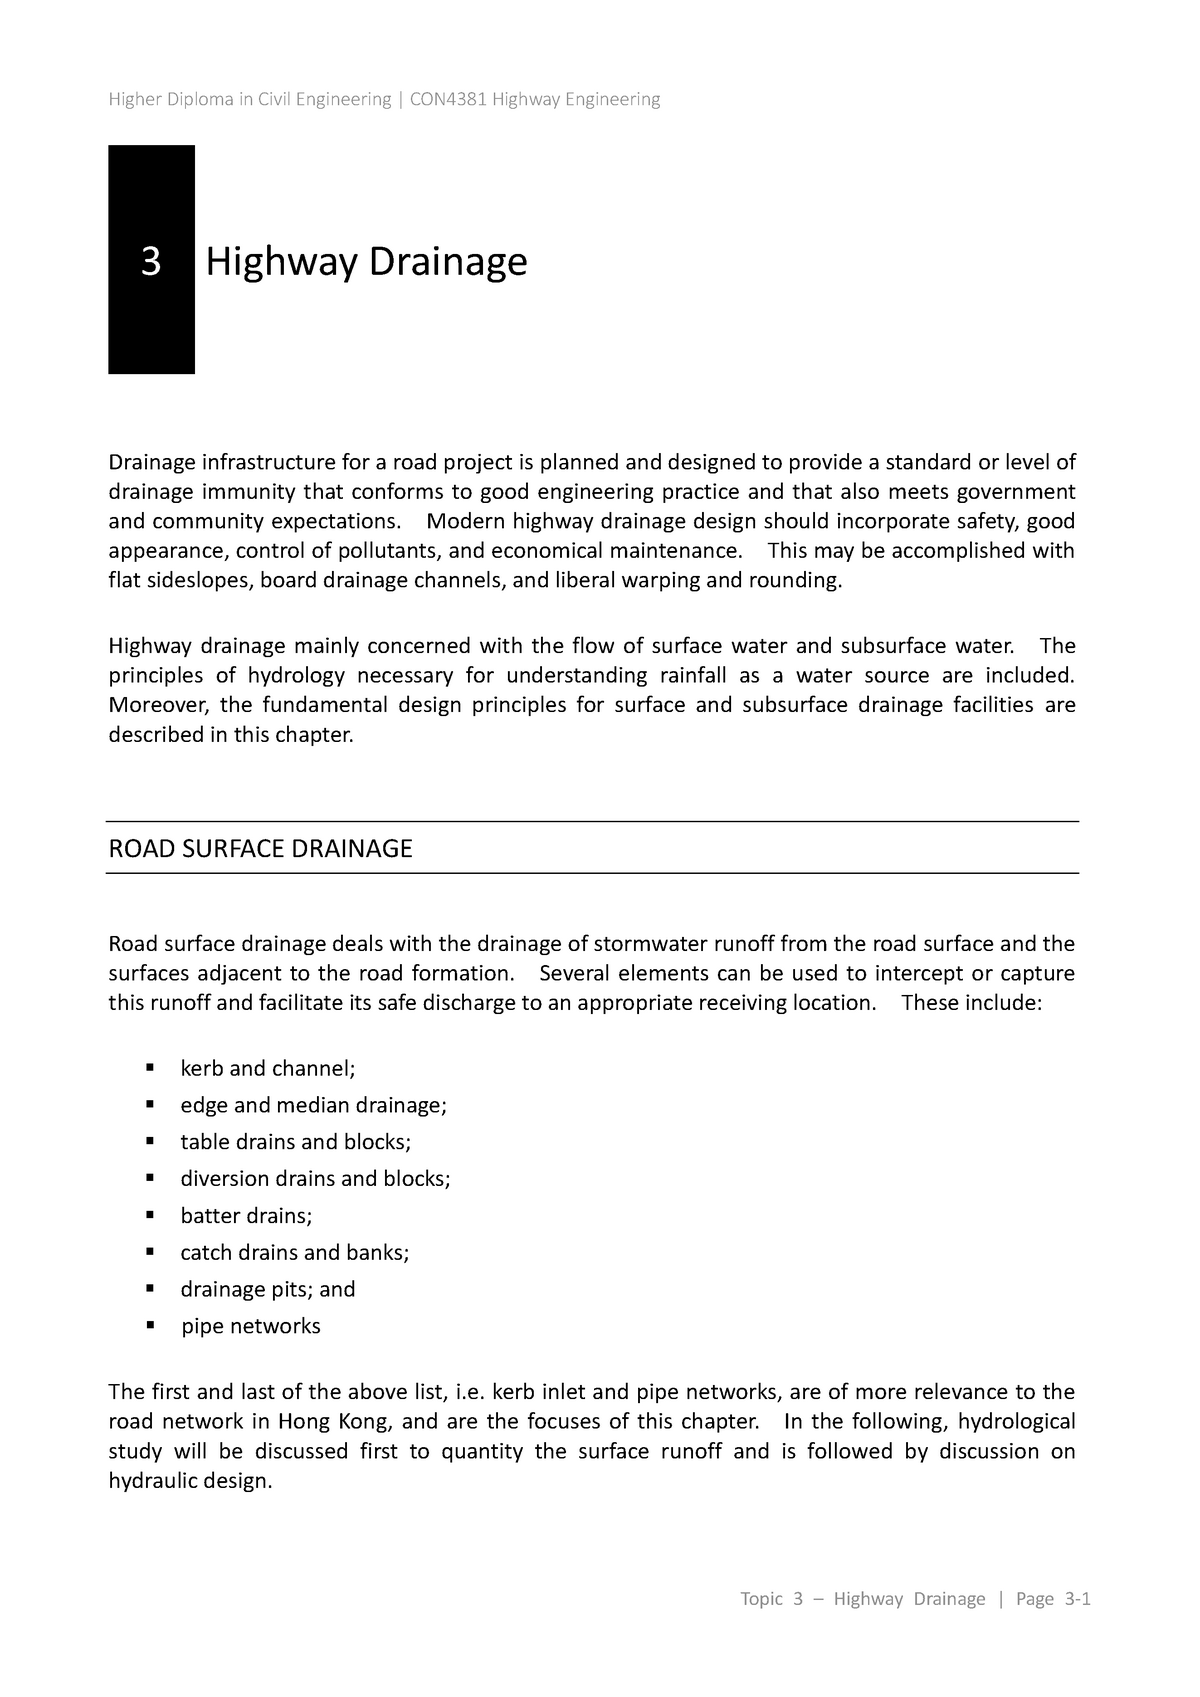 Topic 3  Highway Drainage - MS 5403 Software Engineering